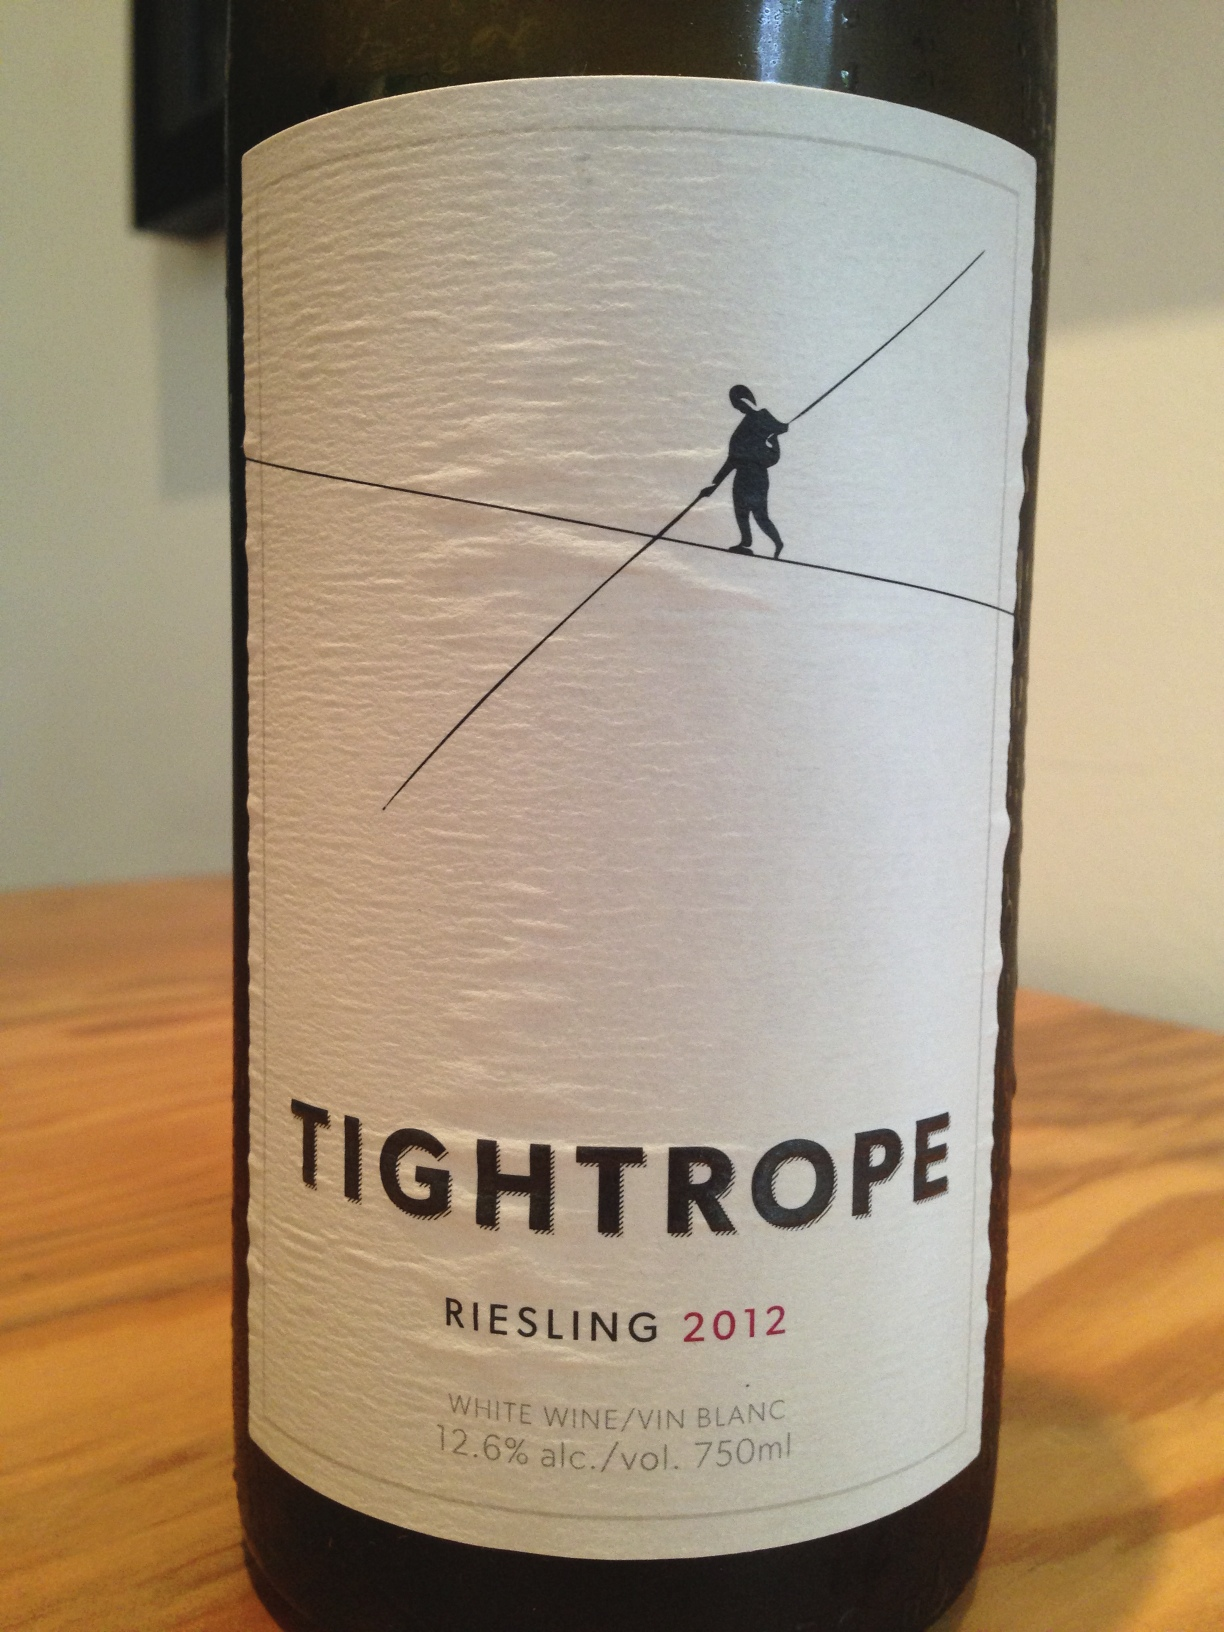 tightrope-riesling-2012